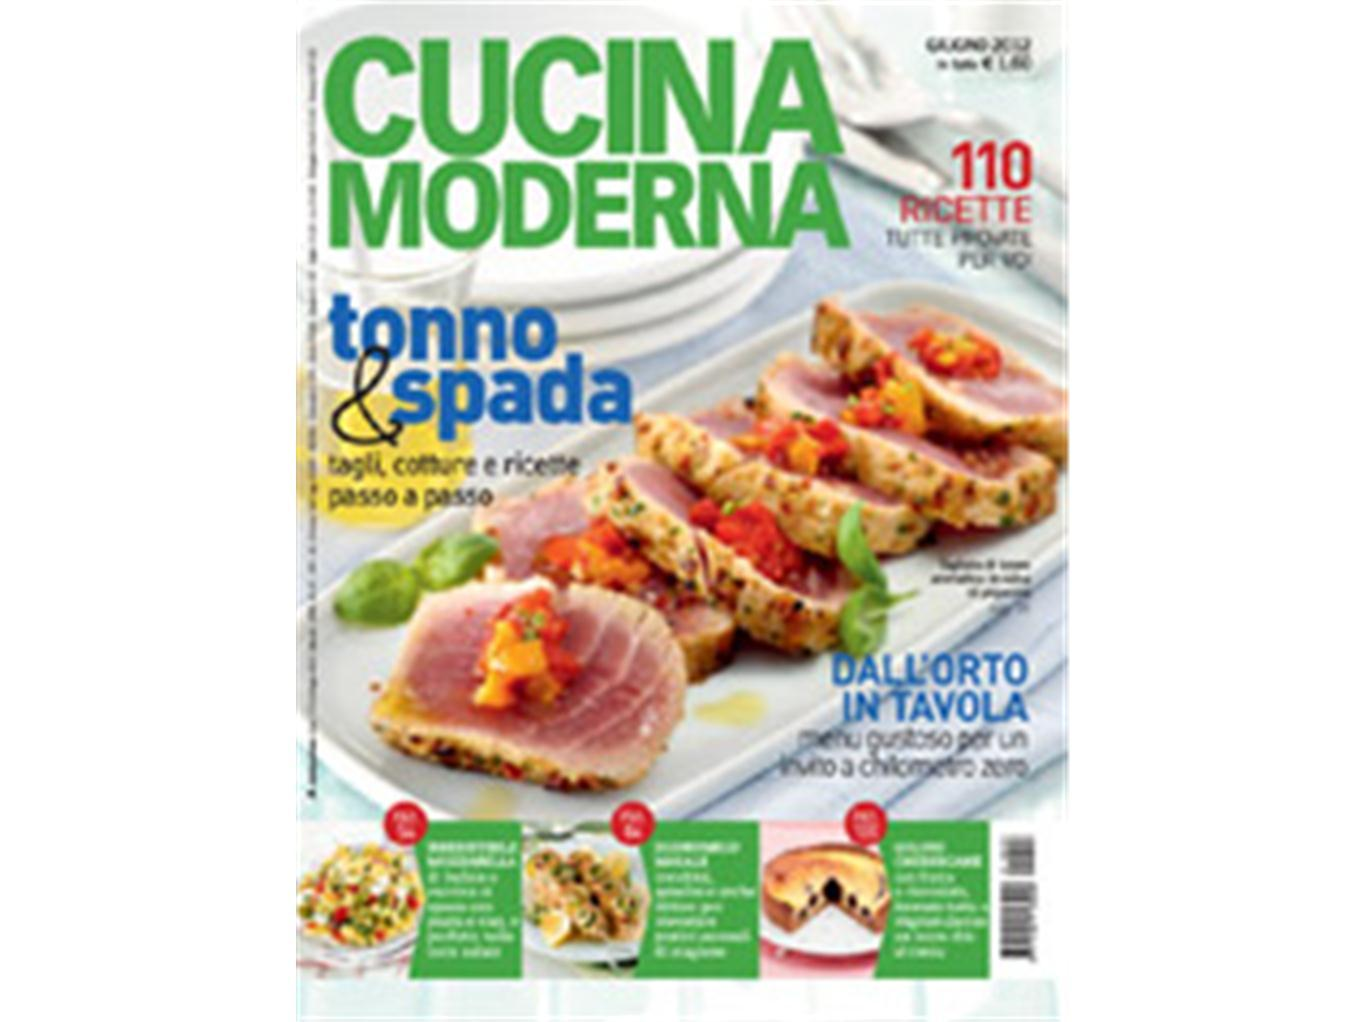 Object moved for Cucina moderna abbonamento